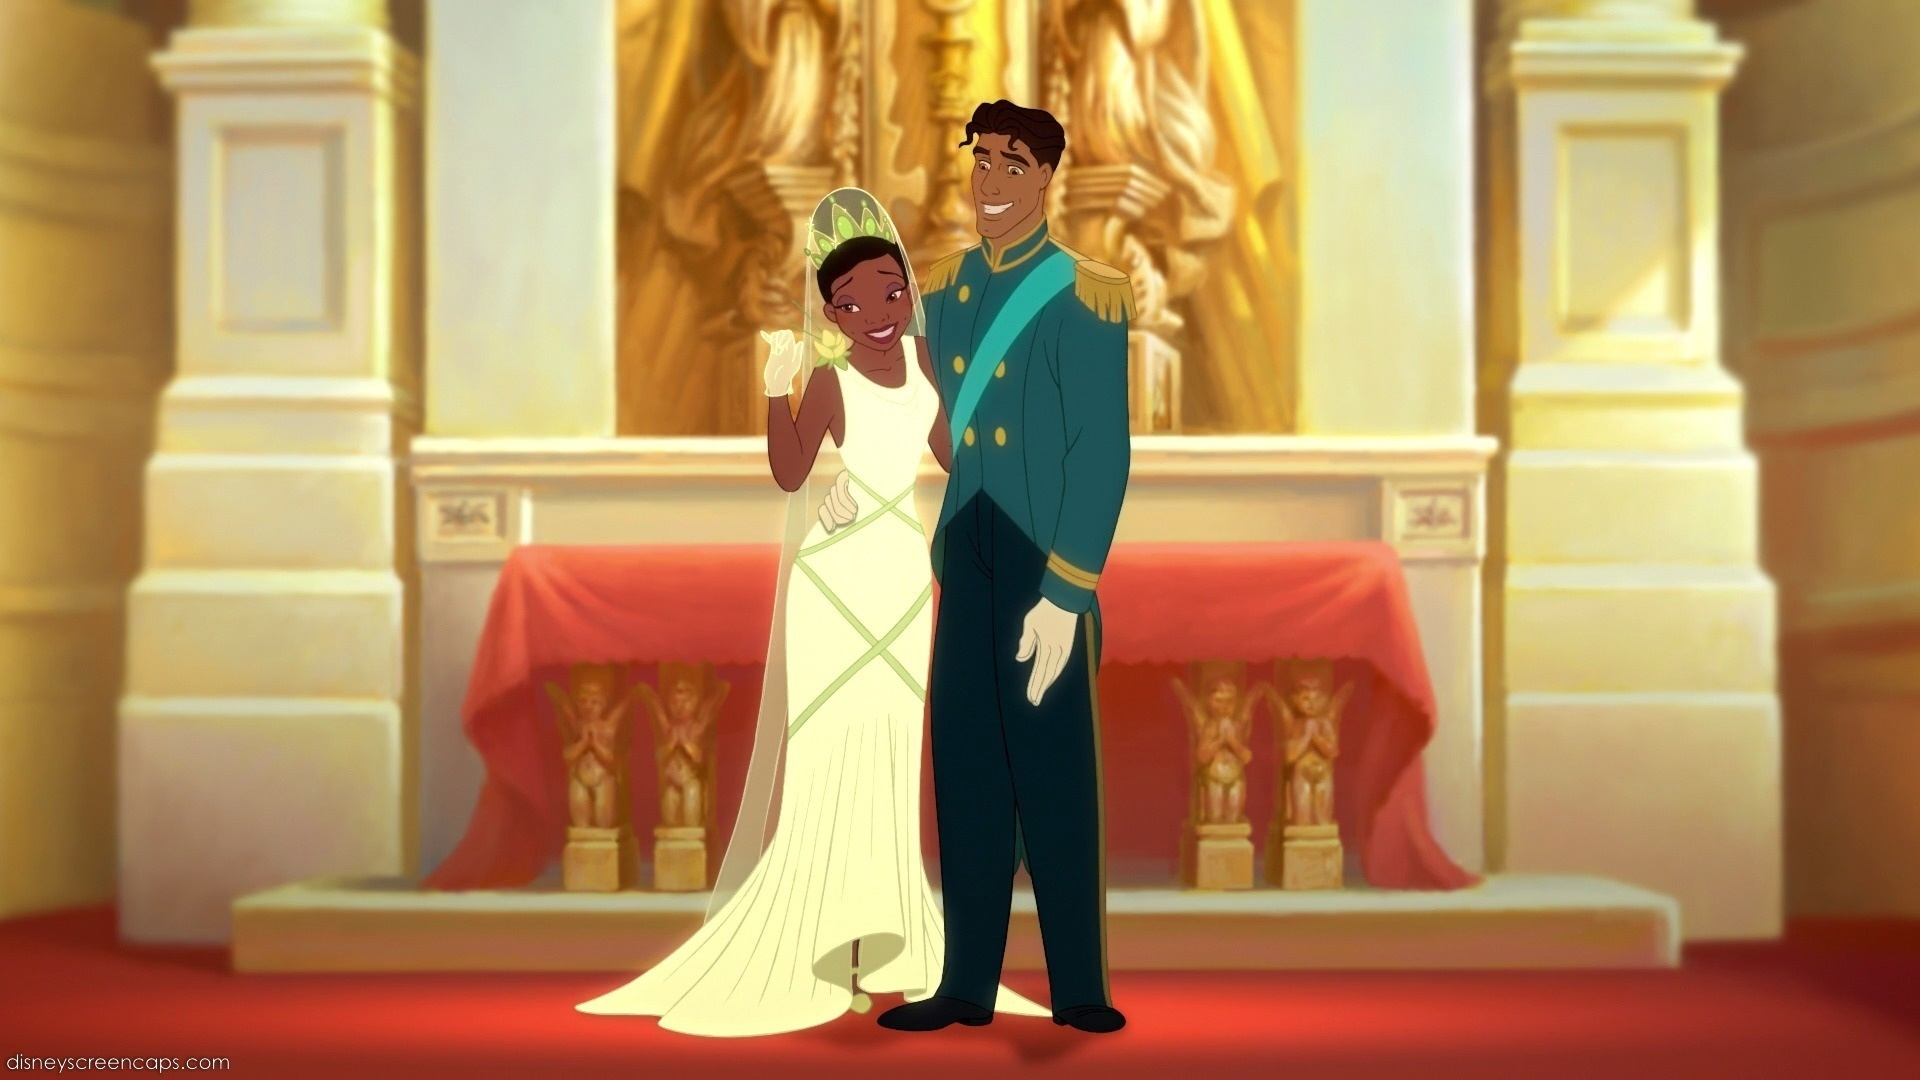 What is your Favorite Wedding dress? Poll Results - Disney Princess ...